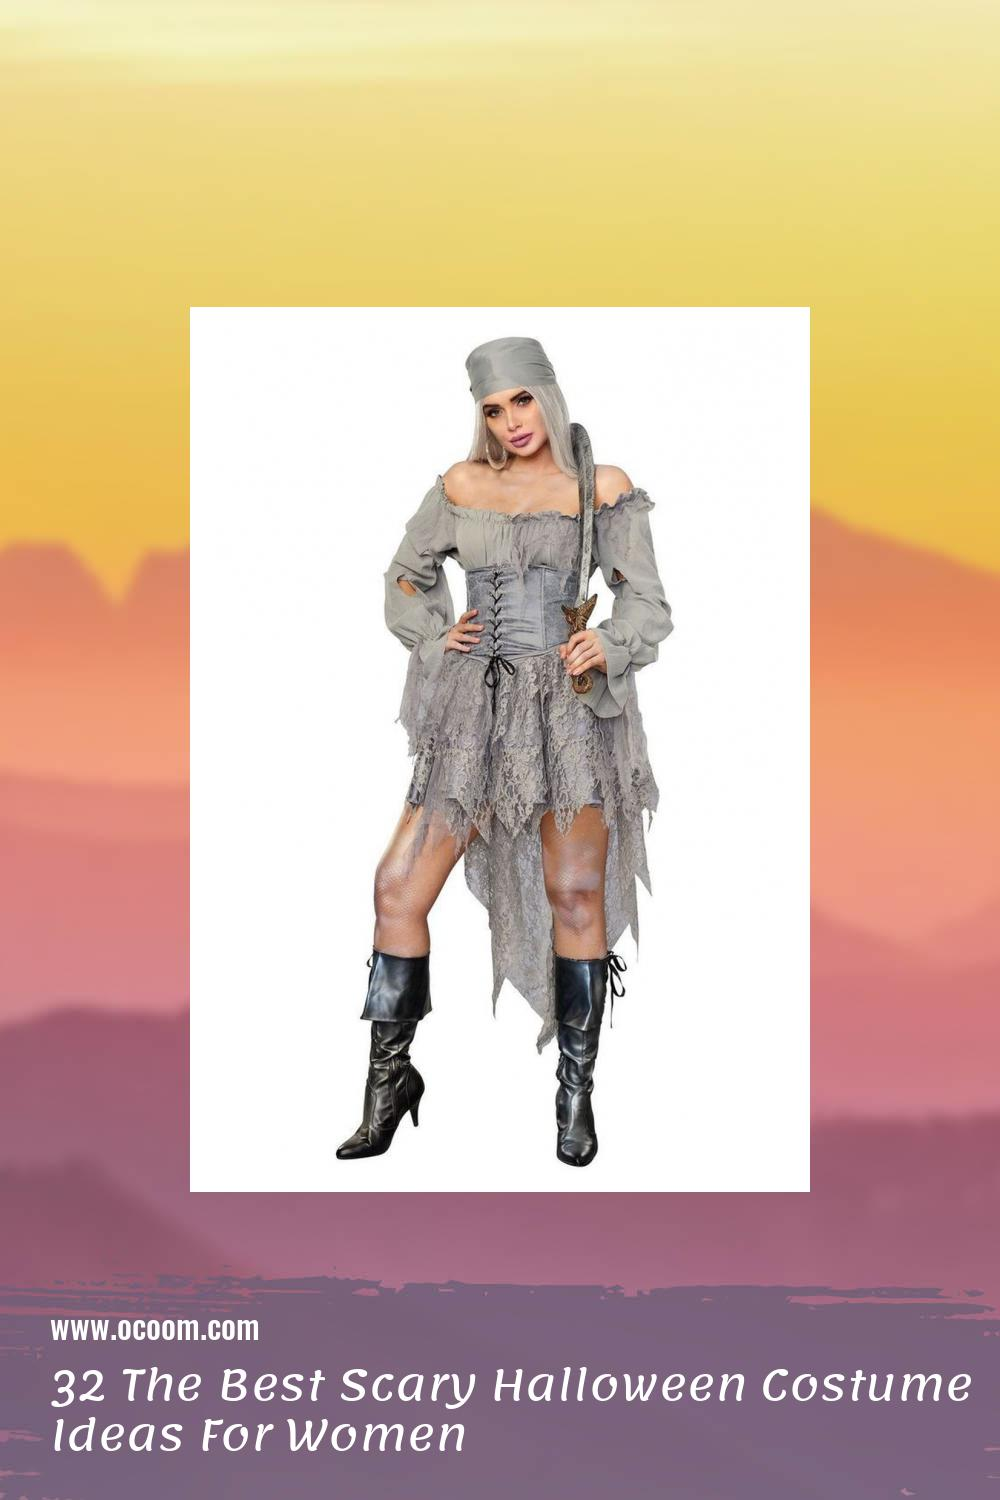 32 The Best Scary Halloween Costume Ideas For Women 36